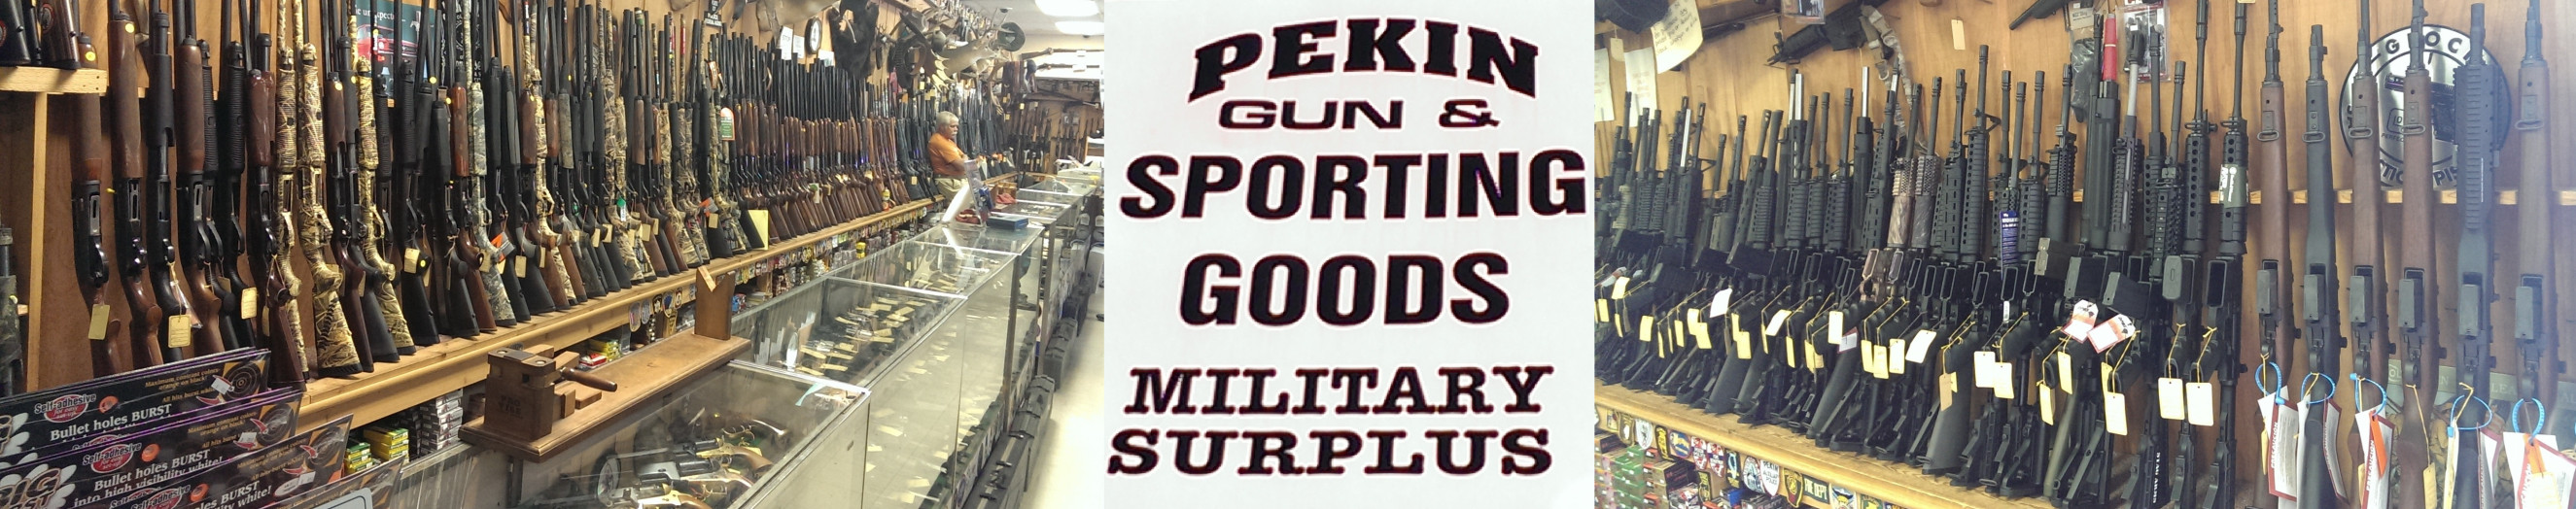 Pekin Gun and Sporting Goods